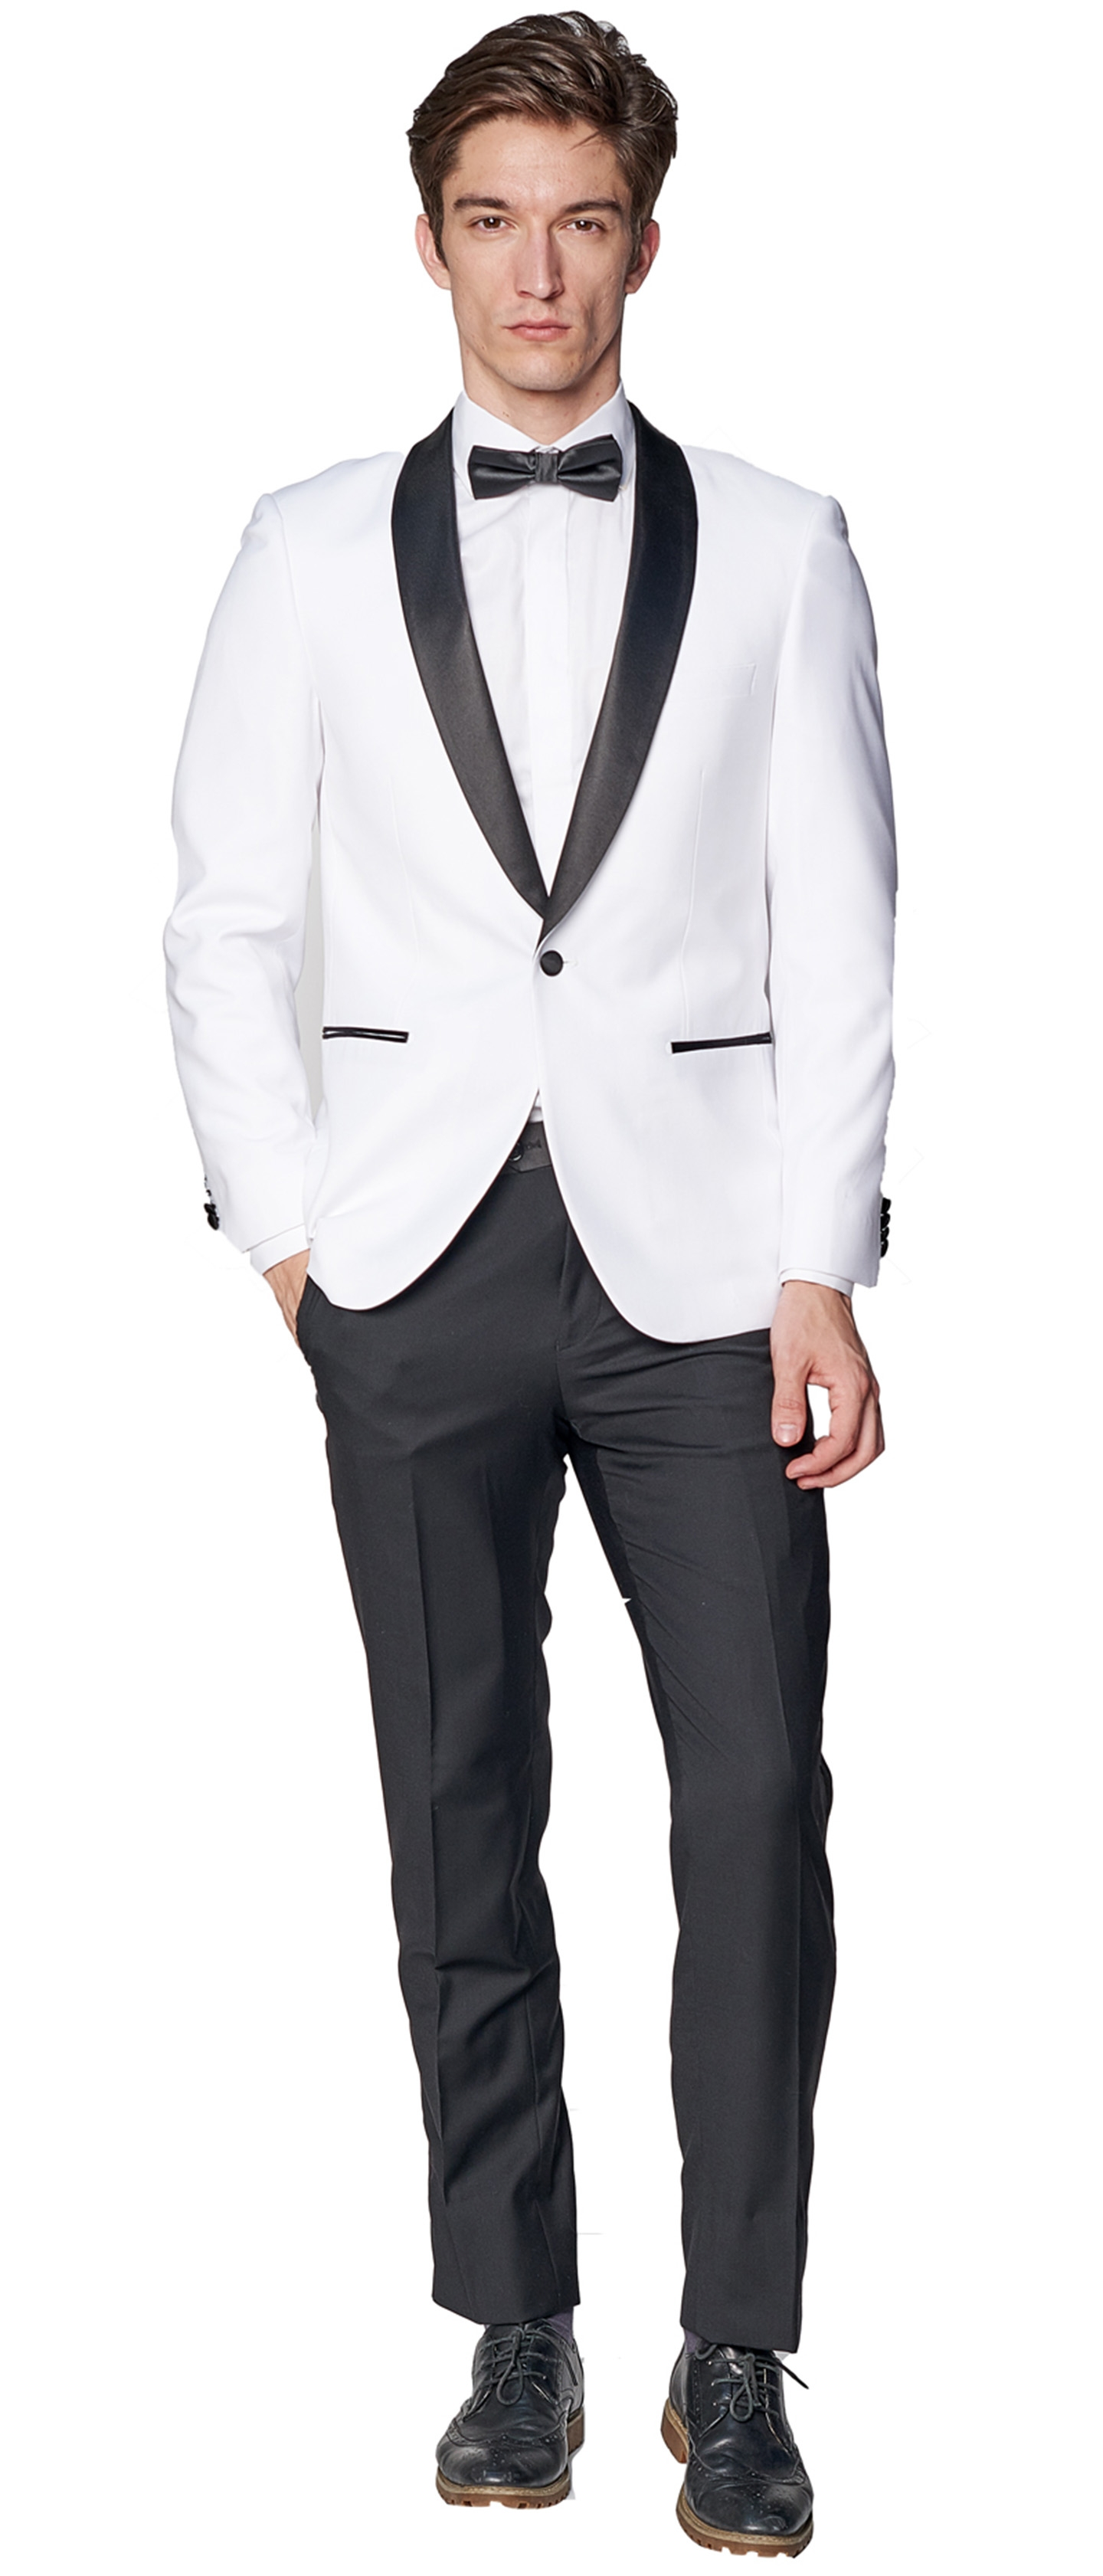 Shop for white tuxedo jacket online at Target. Free shipping on purchases over $35 and save 5% every day with your Target REDcard.